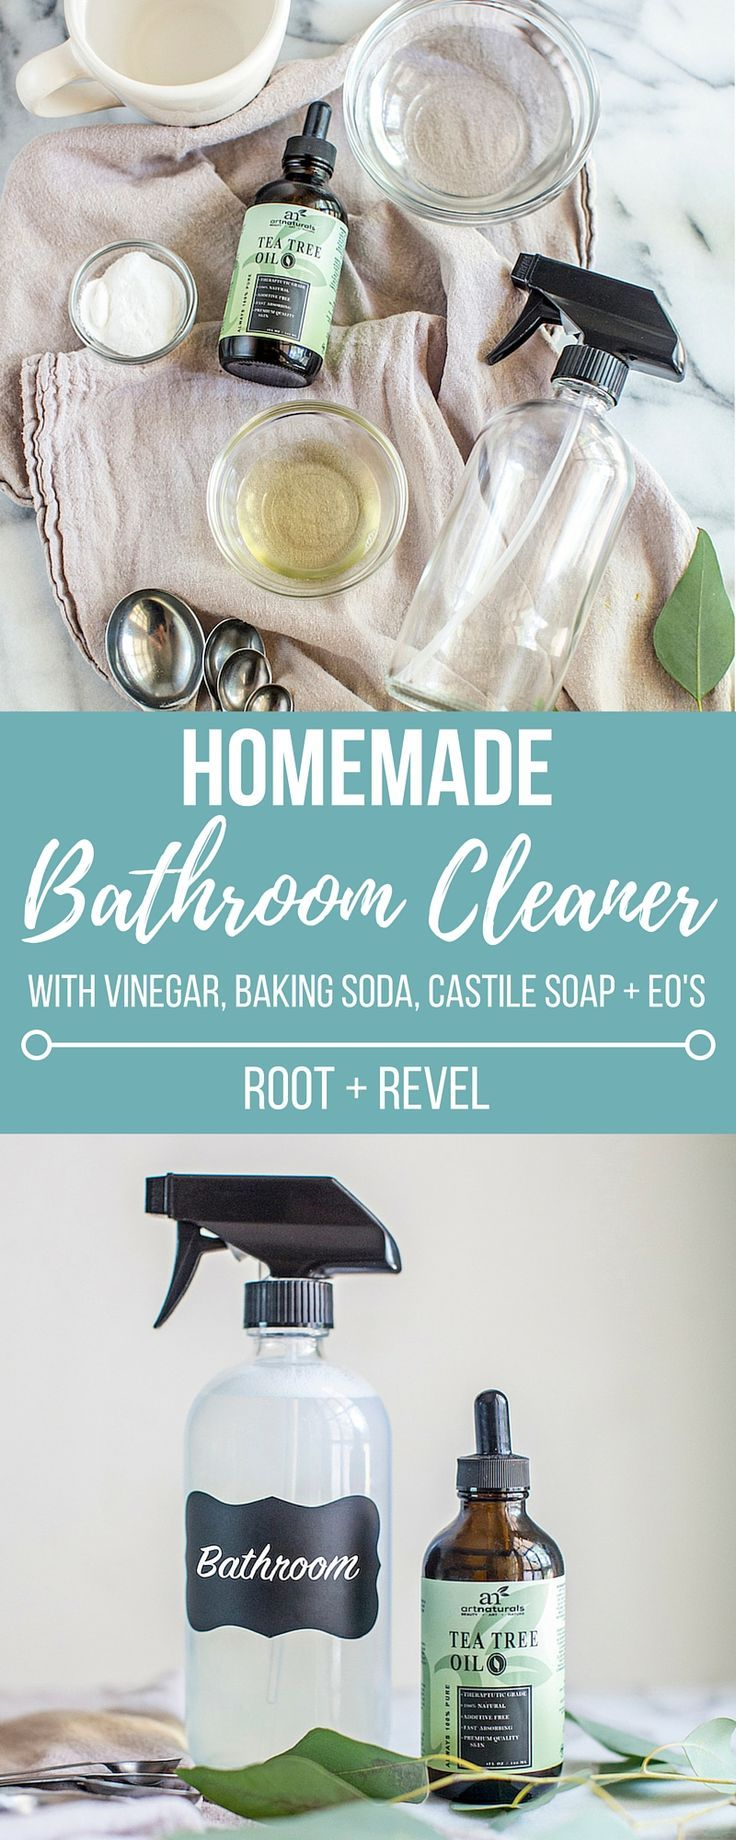 Homemade Bathroom Cleaner Recipe Homemade Bathroom Cleaner - Best all natural bathroom cleaner